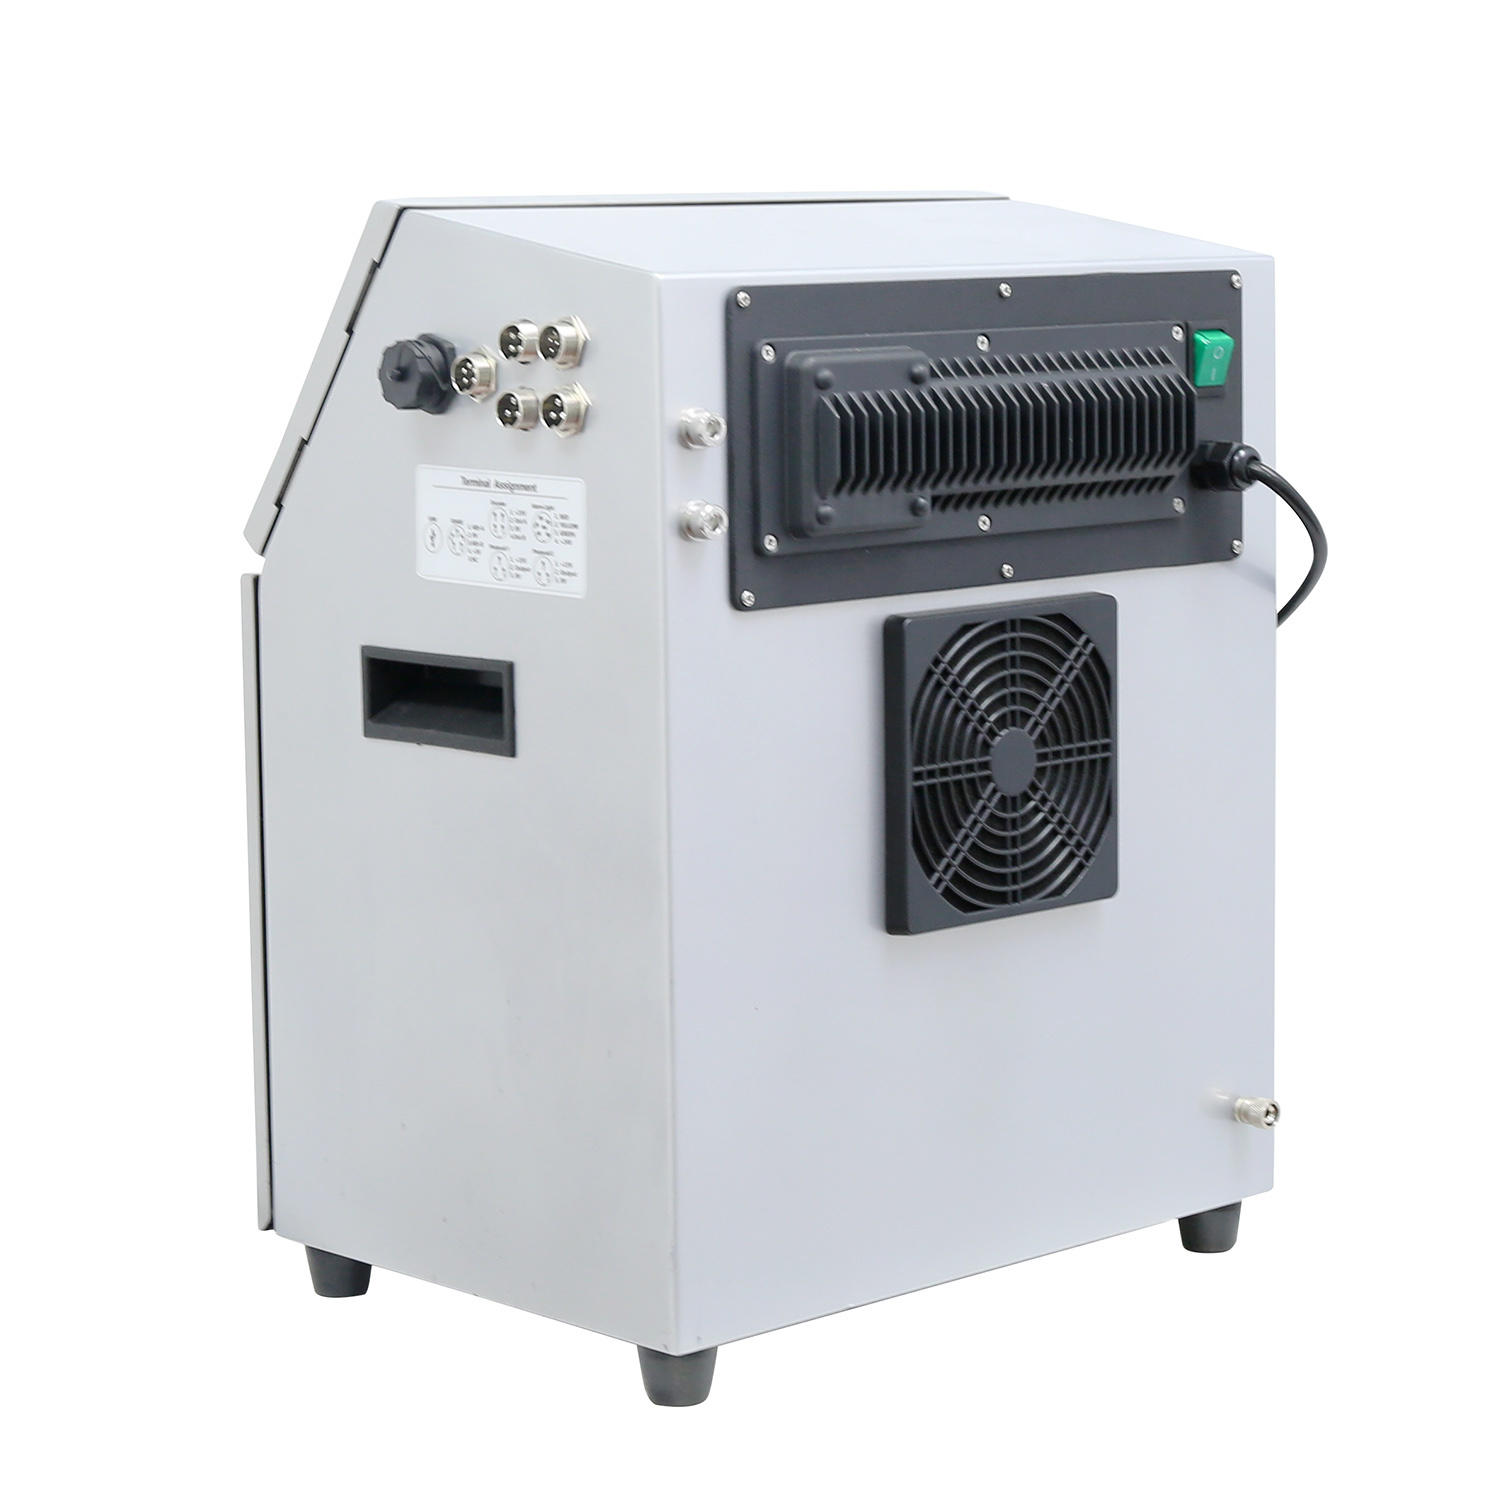 Lead Tech Lt800 Printer Date and Time Printing